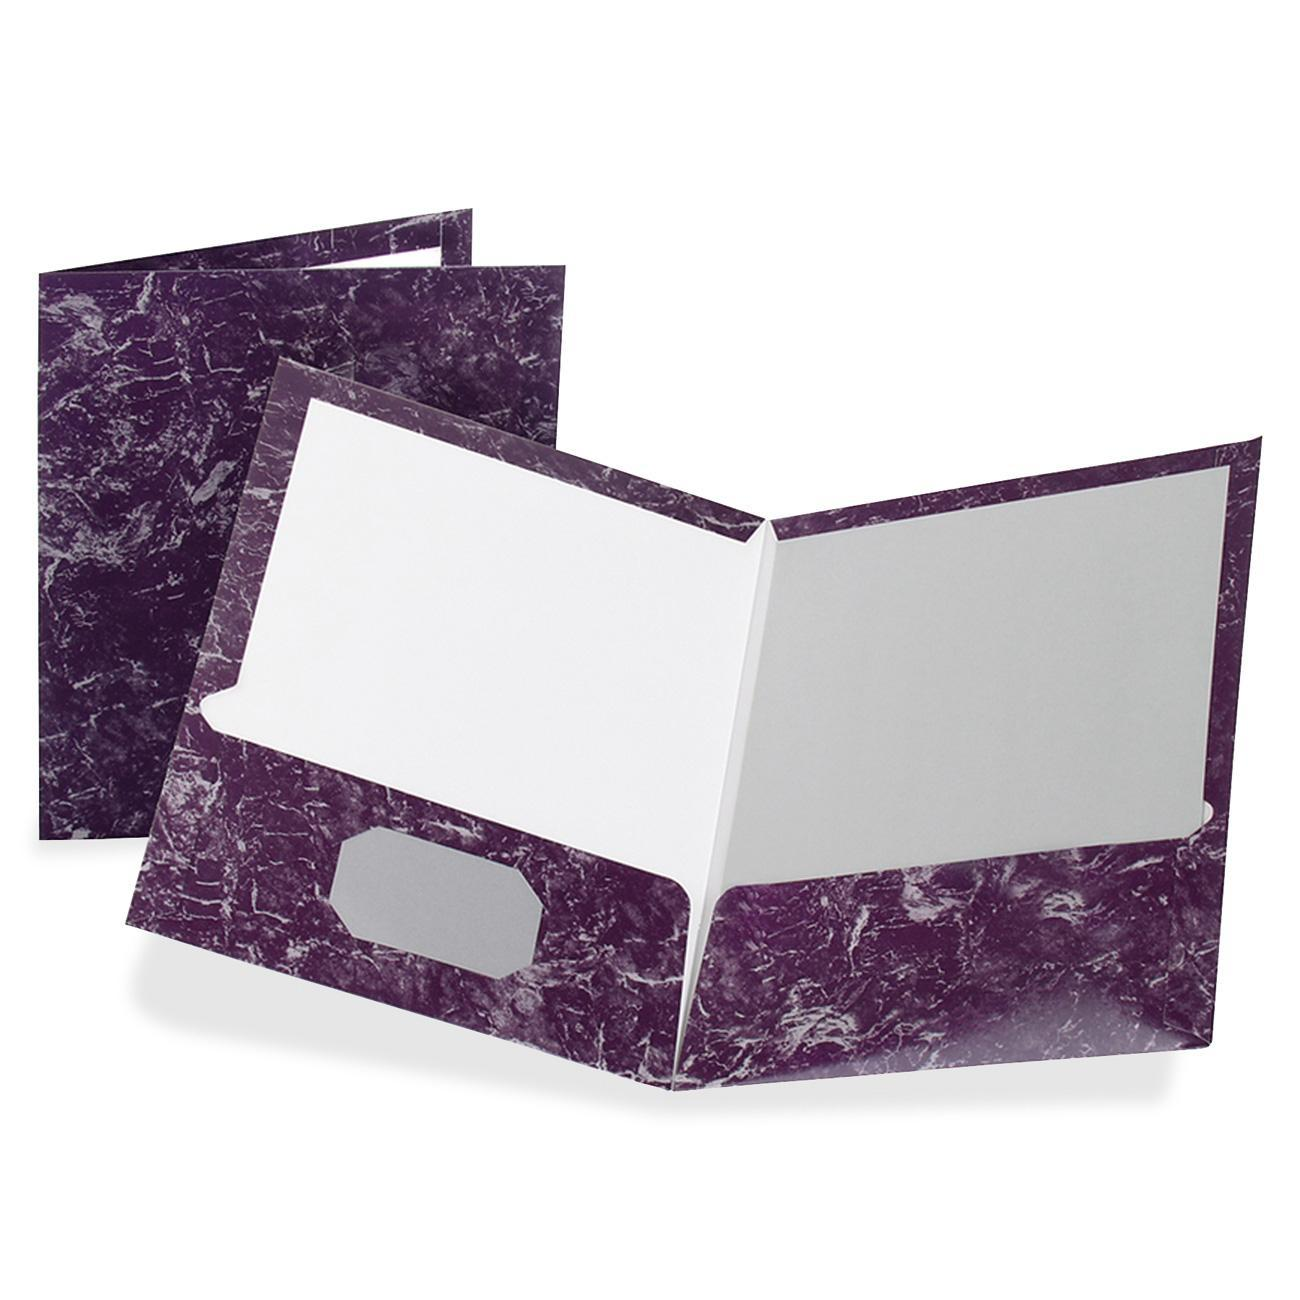 Oxford, OXF51626, Marble Laminated Twin Pocket Folders, 25 / Box, Deep Purple